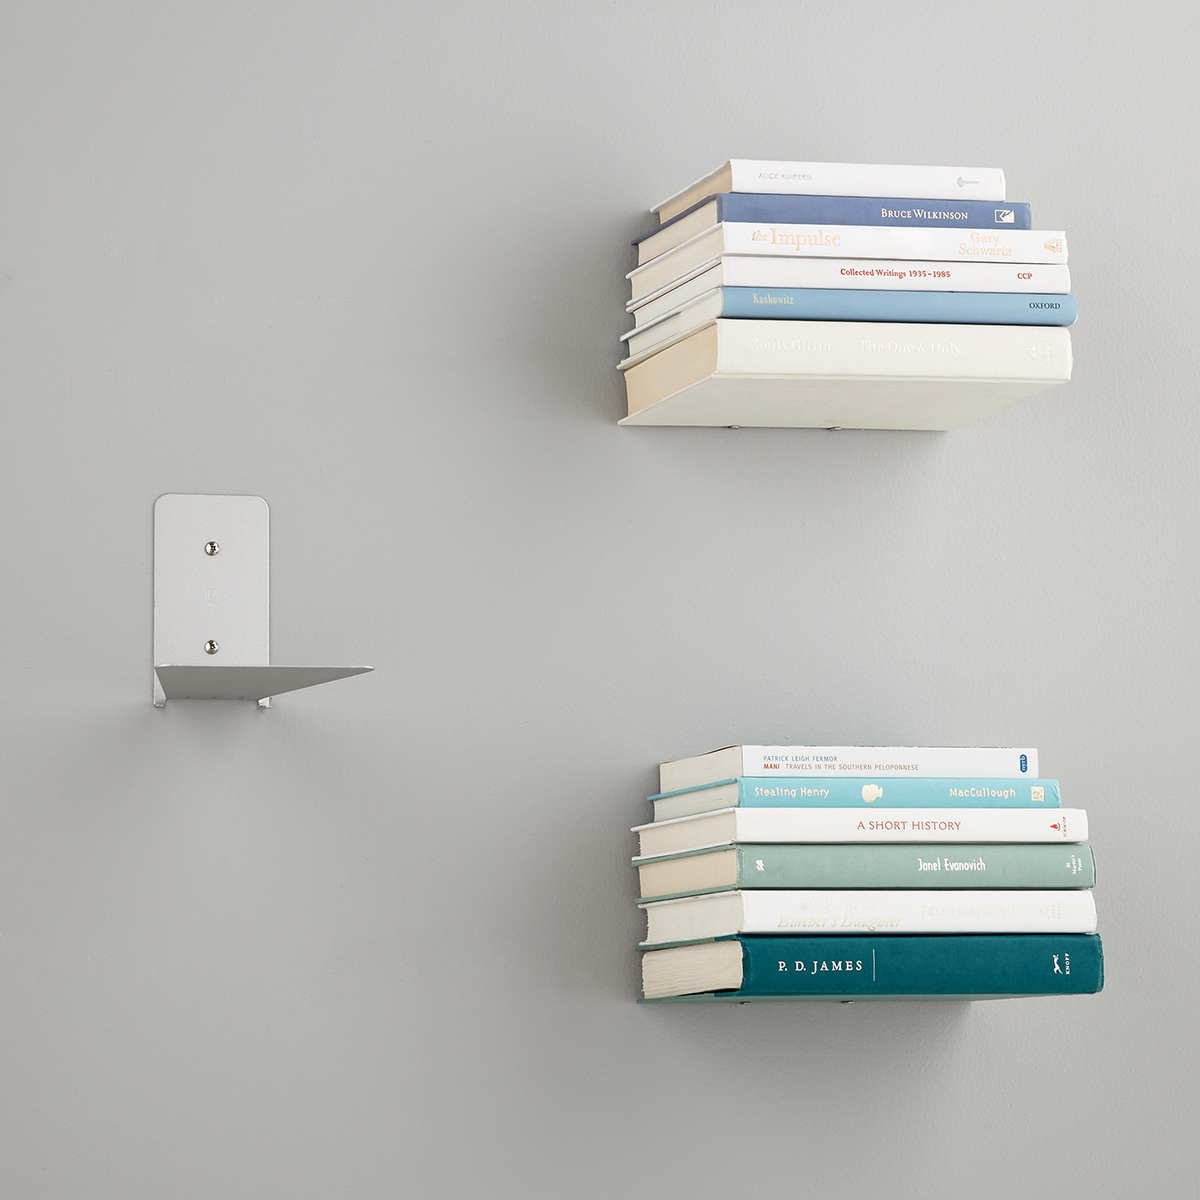 Umbra Silver Conceal Book Shelves